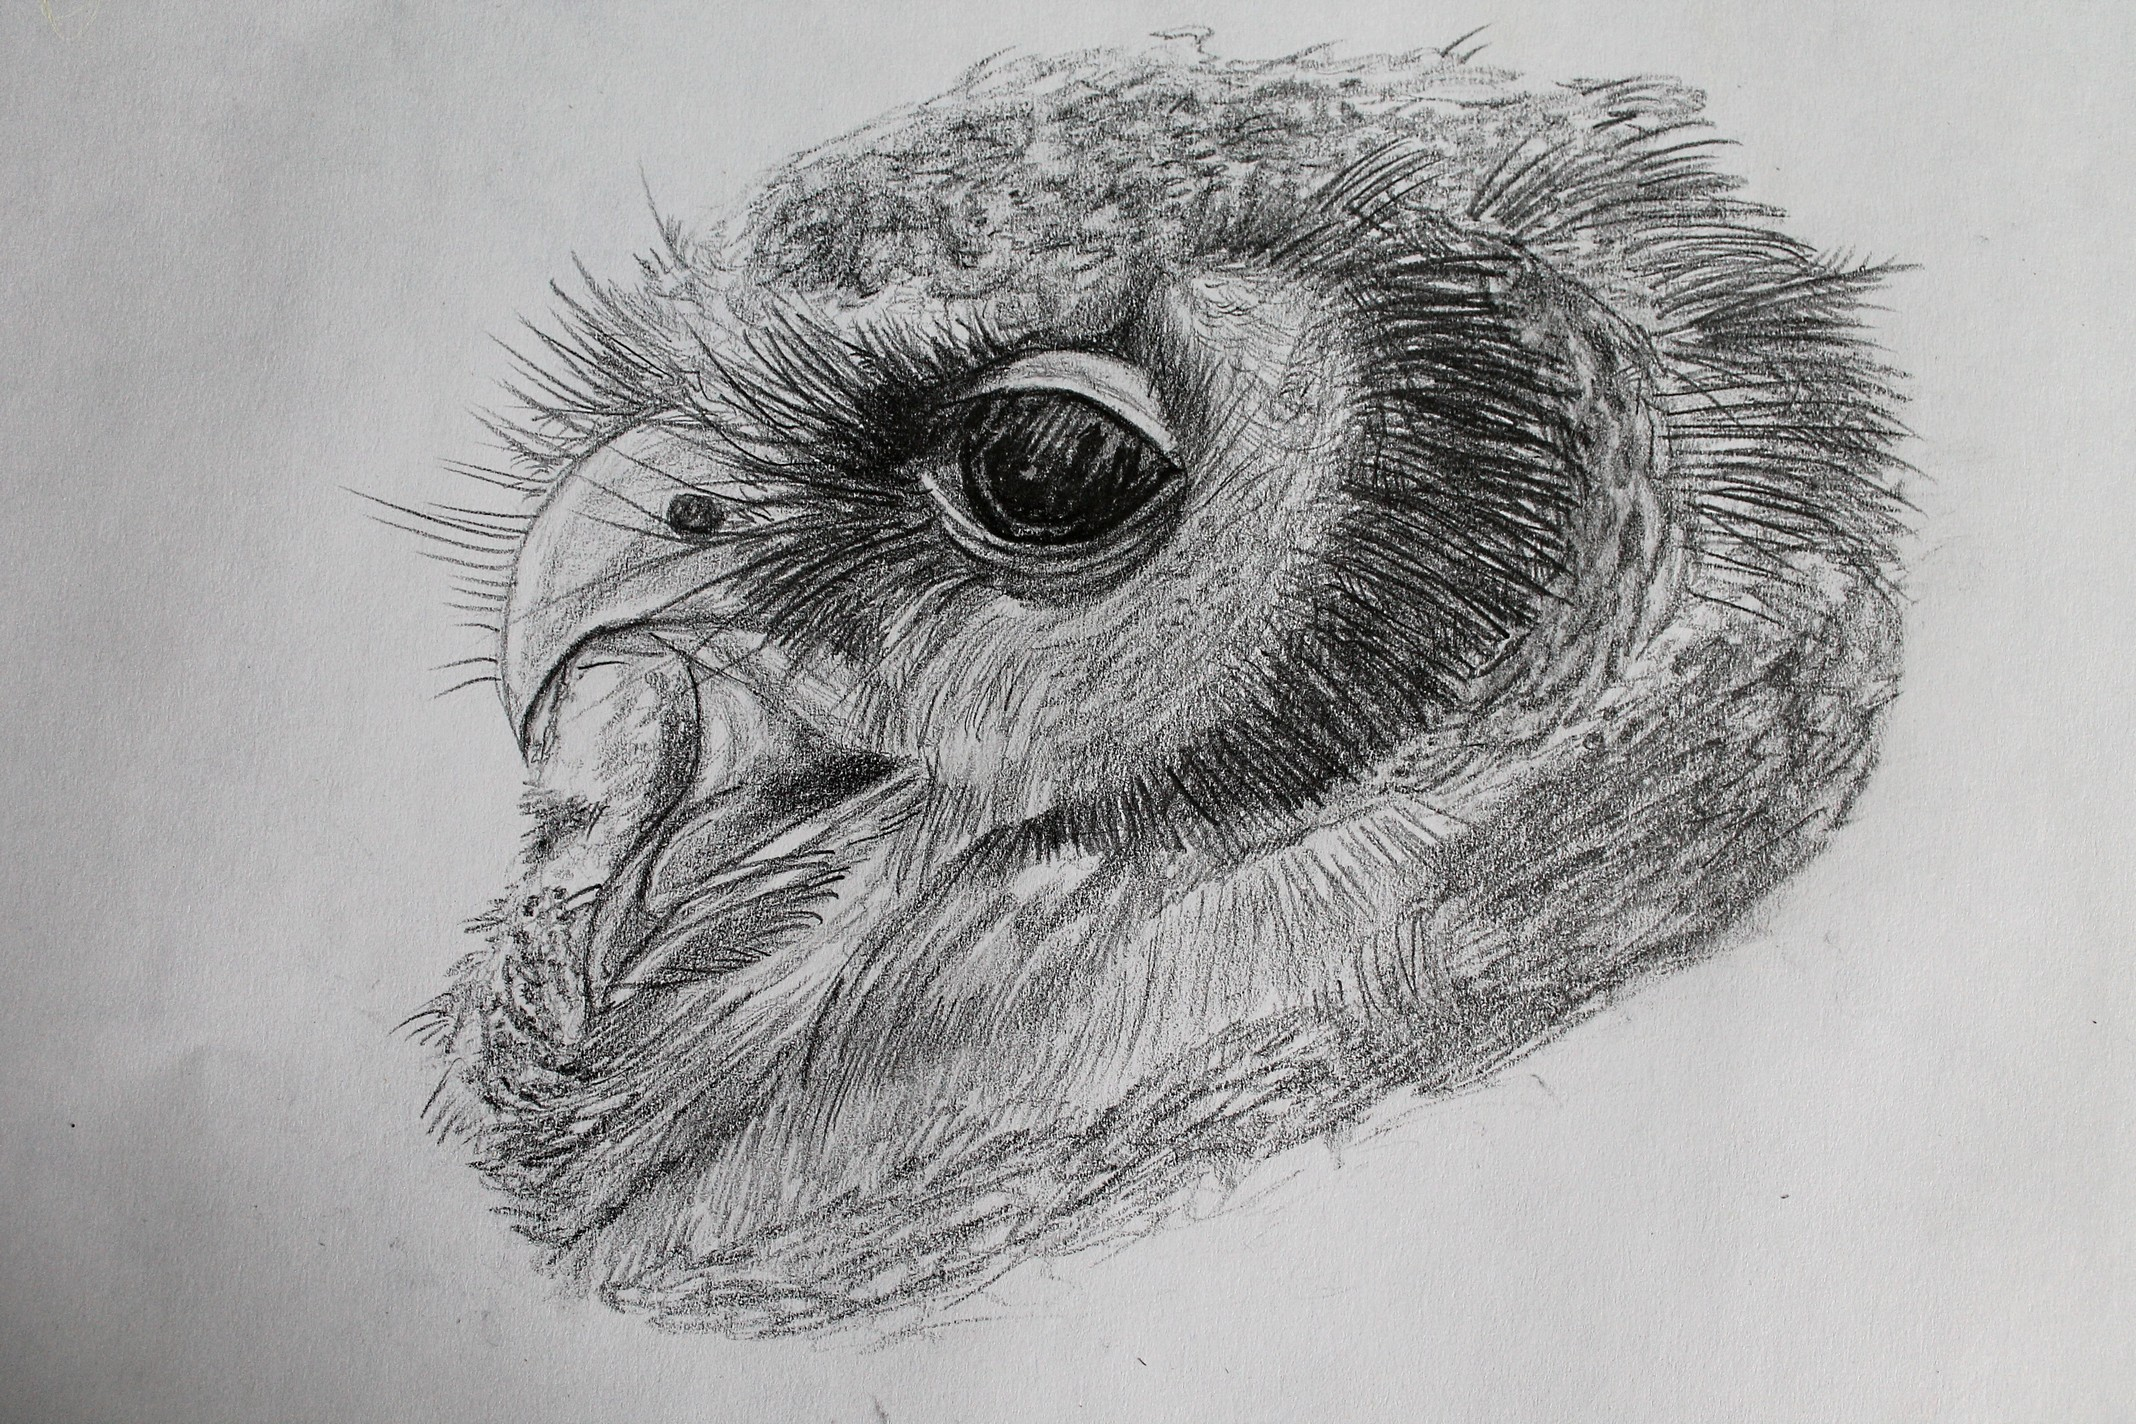 I used a 4B grade pencil for this owl drawing, my comfort pencil!